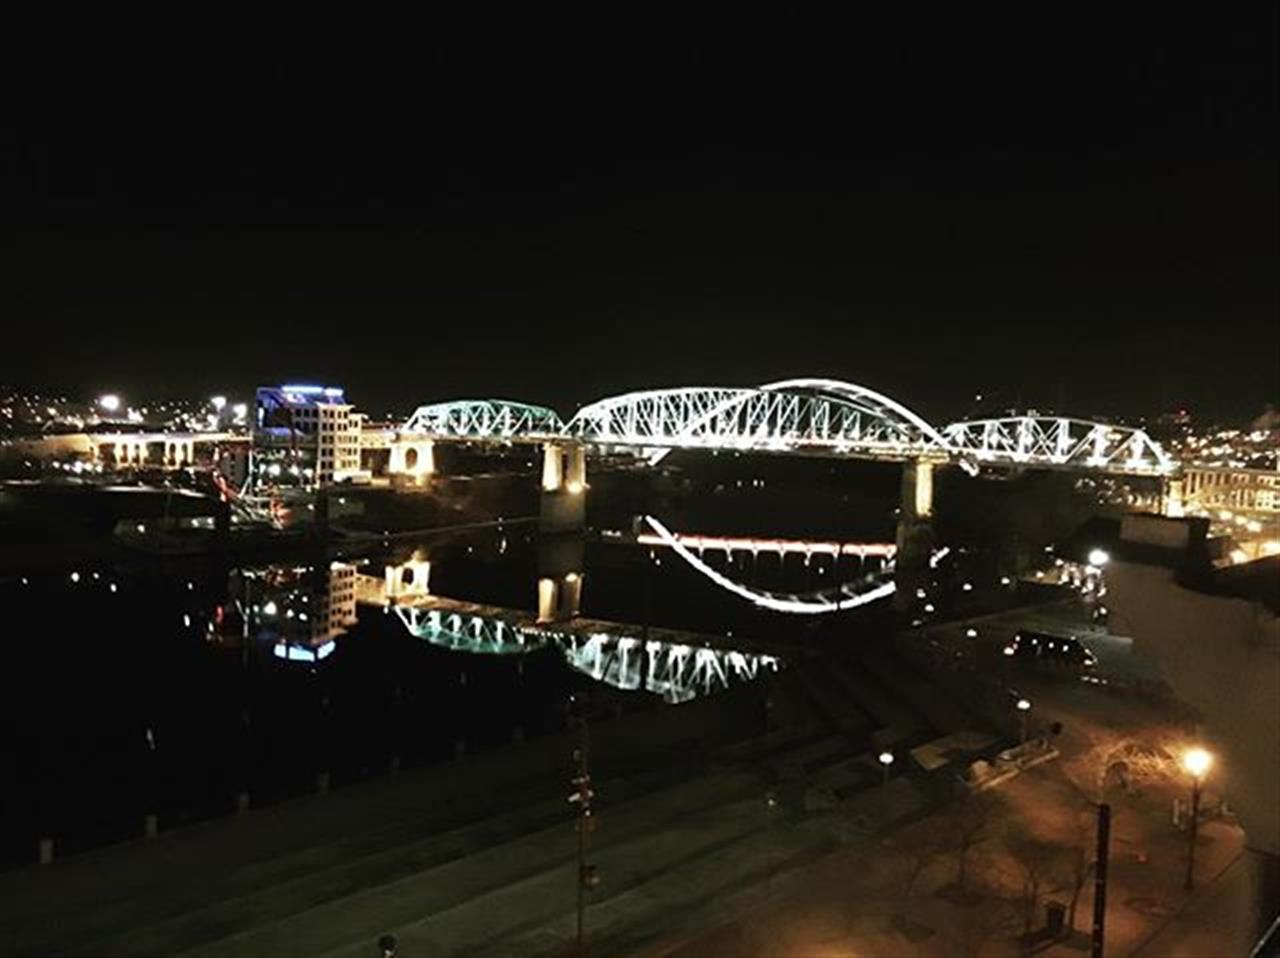 The John Seigenthaler Pedestrian Bridge connects downtown Nashville to the residential suburbs of East Nashville. The bridge was closed to automobile traffic in 1998 and has been restored for pedestrian use, providing outstanding views of the Cumberland River and the Nashville skyline ? #pedestrianbridge #downtownnashville #cumberlandriver #parksrealty #leadingrelocal